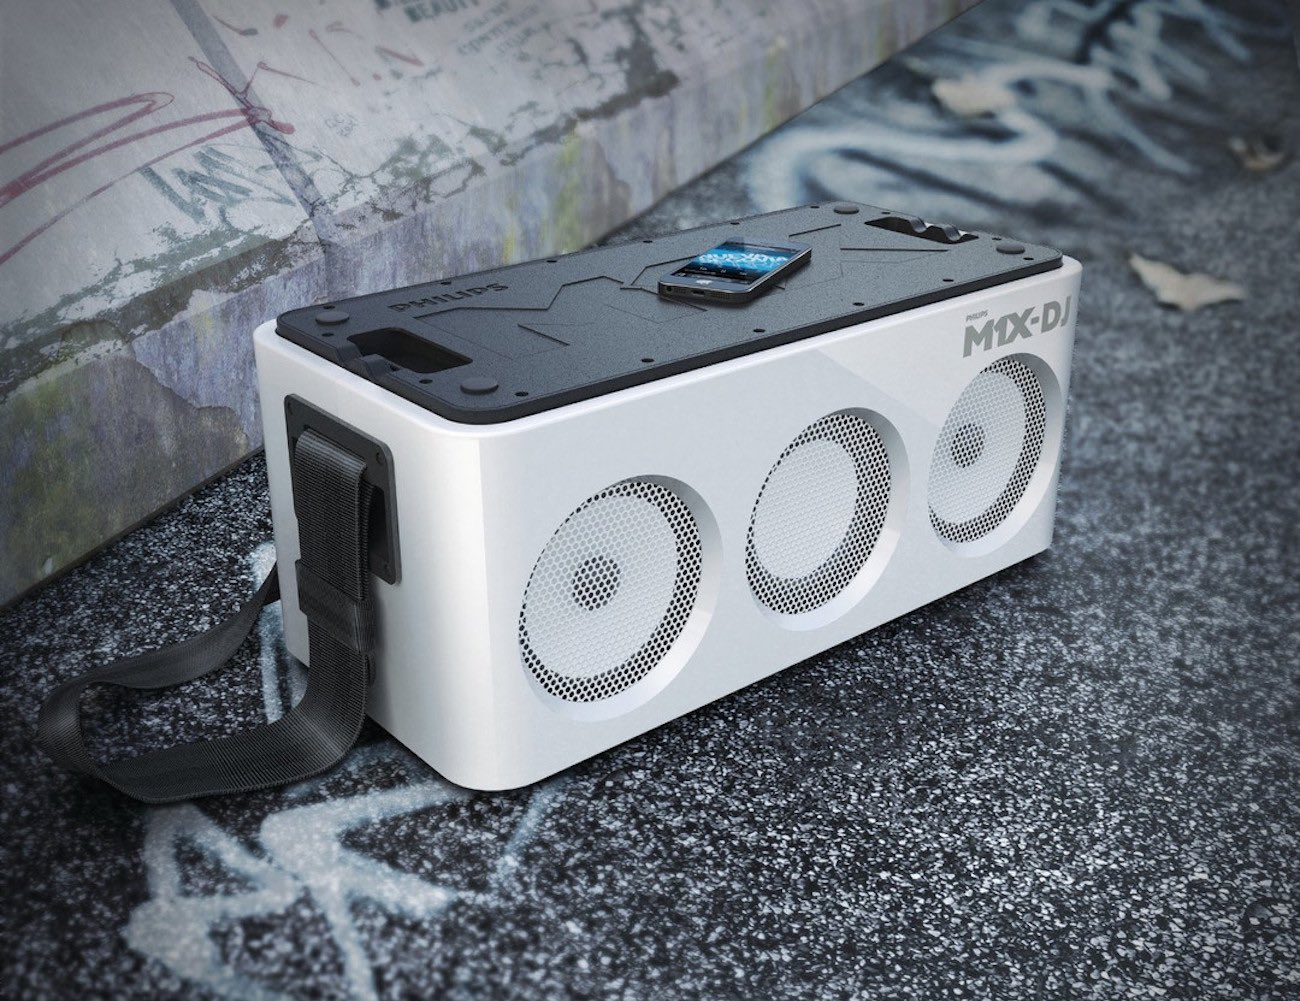 Philips M1X-DJ – Portable Sound System and Docking Station